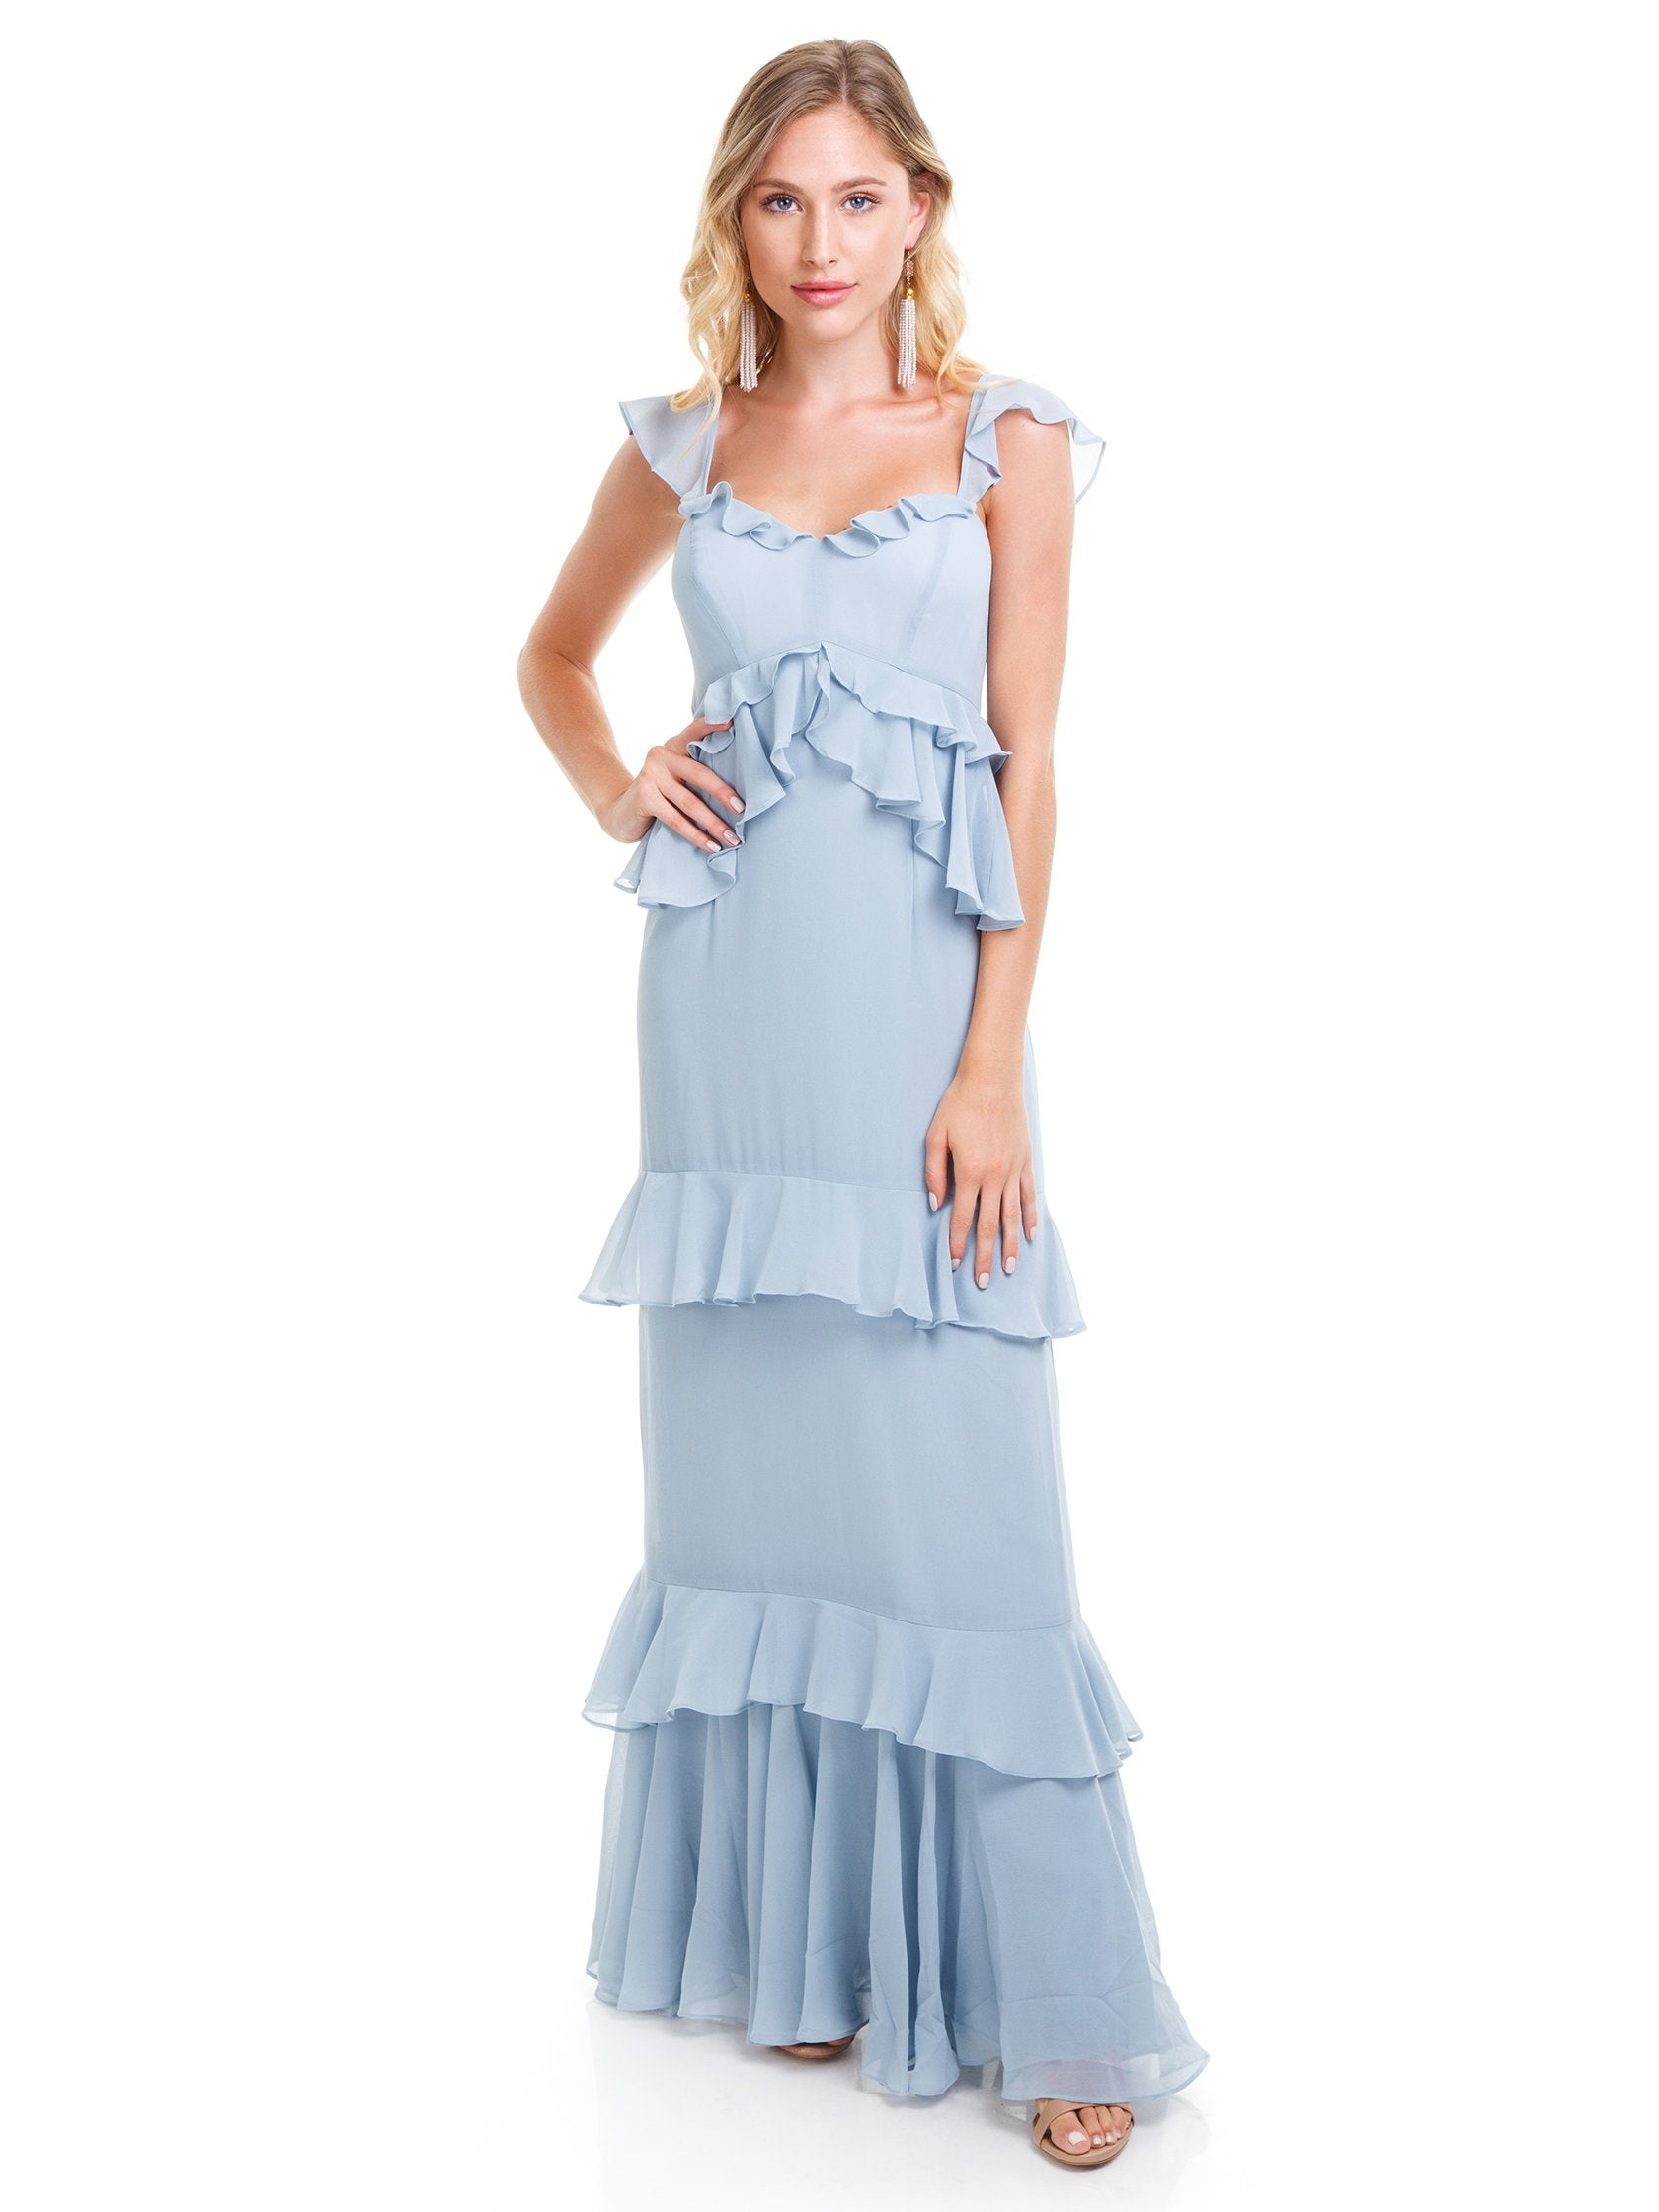 Girl outfit in a dress rental from WAYF called Gwyneth Ruffle Maxi Dress